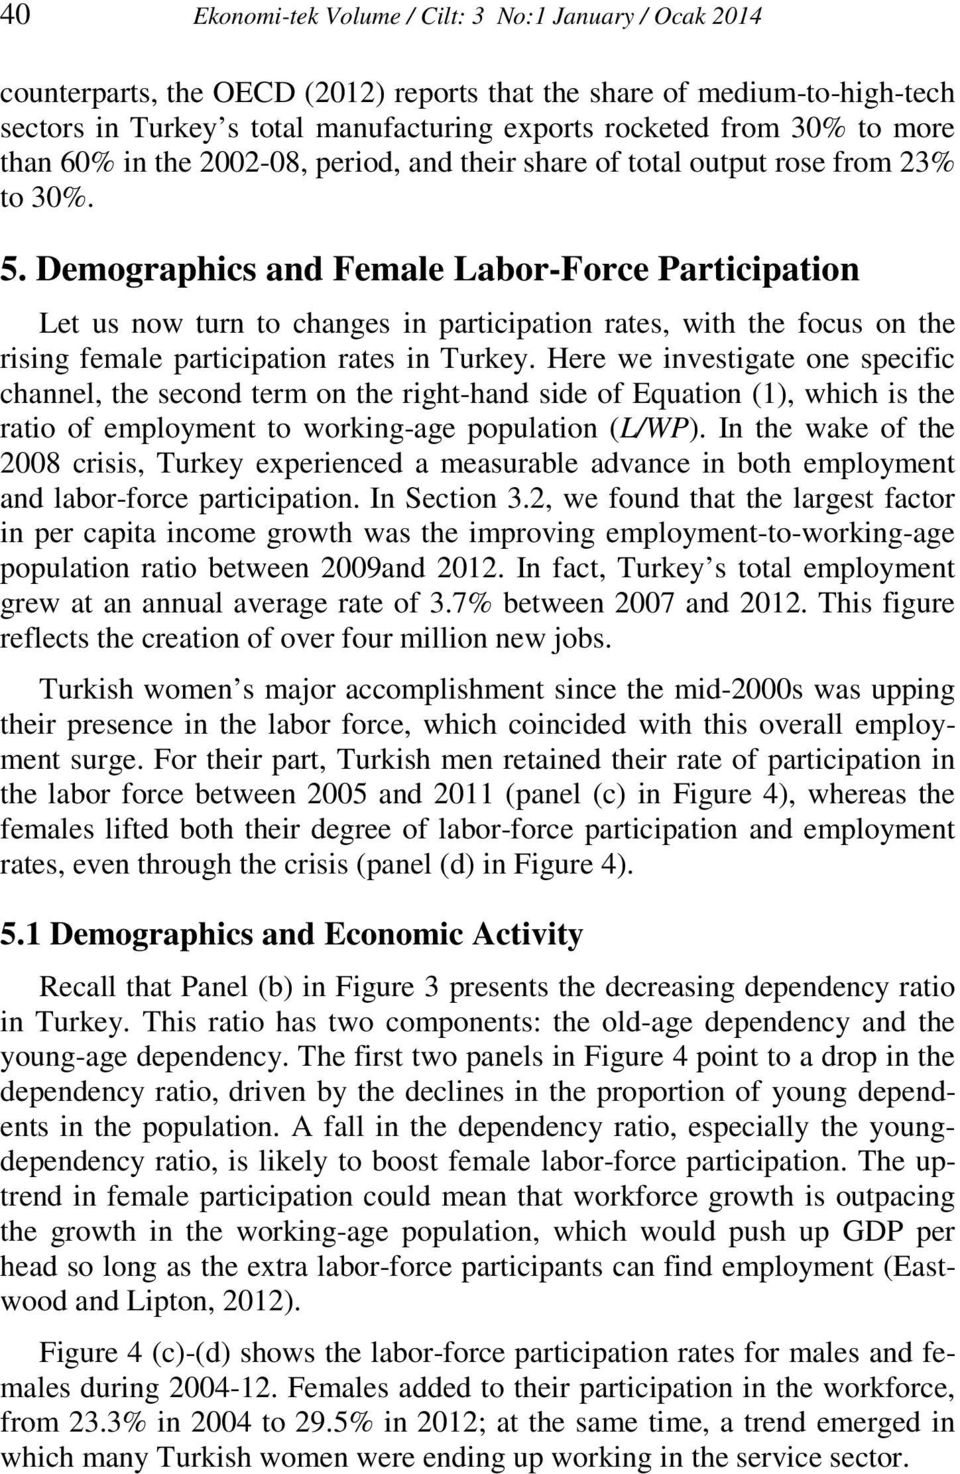 Demographics and Female Labor-Force Participation Let us now turn to changes in participation rates, with the focus on the rising female participation rates in Turkey.